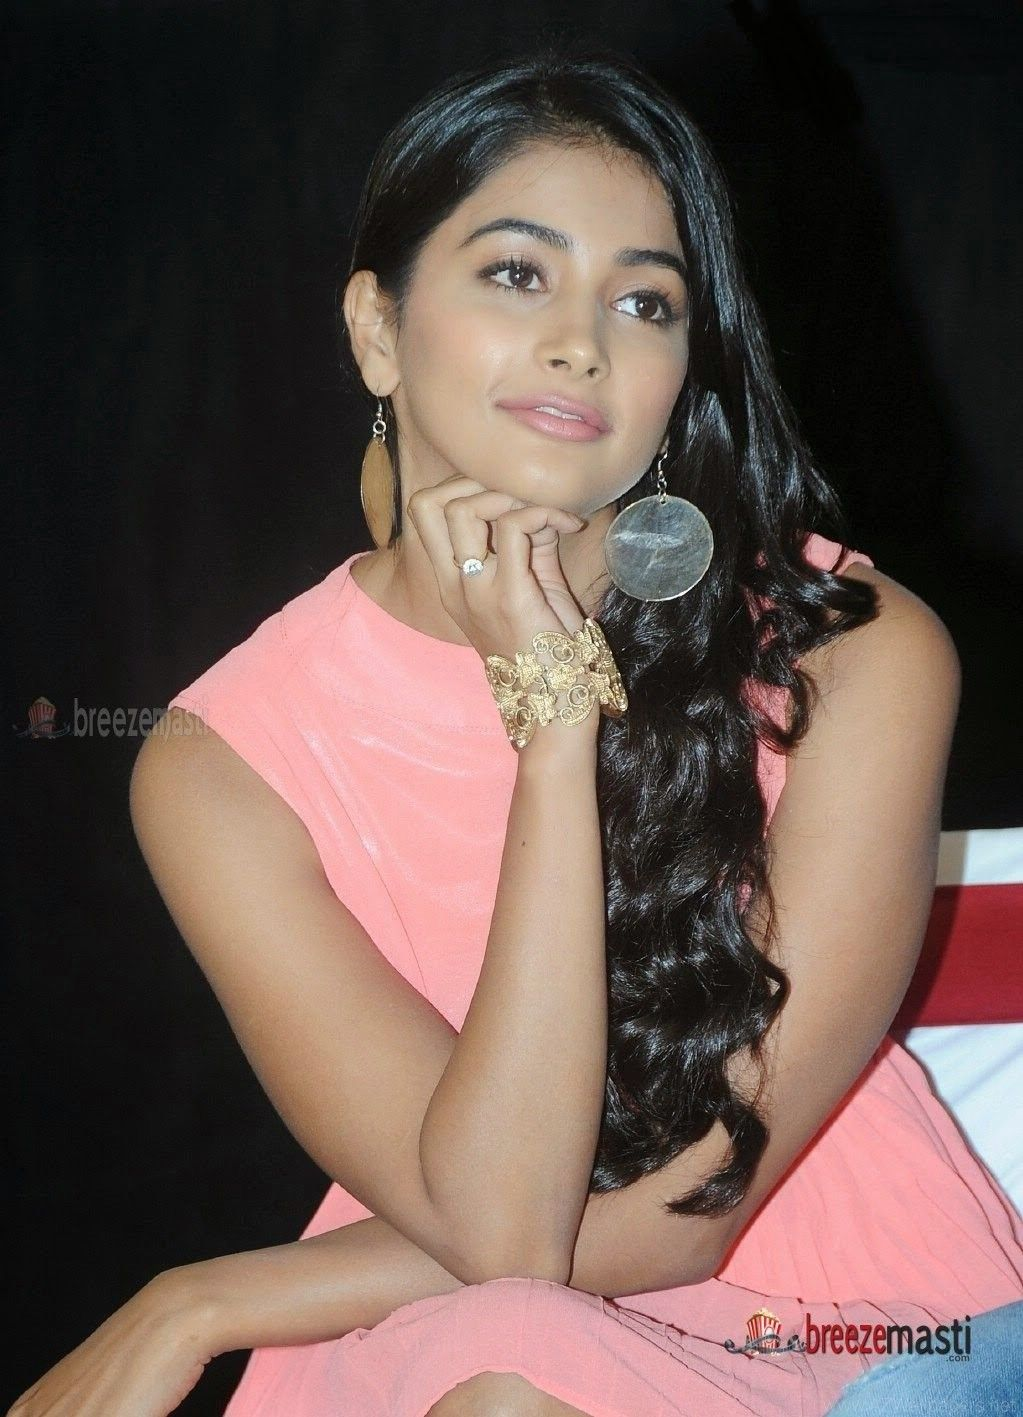 Miss Pooja Nude Photo Cheap pooja hegde hot and sexy photos images and wallpapers | wallpapers